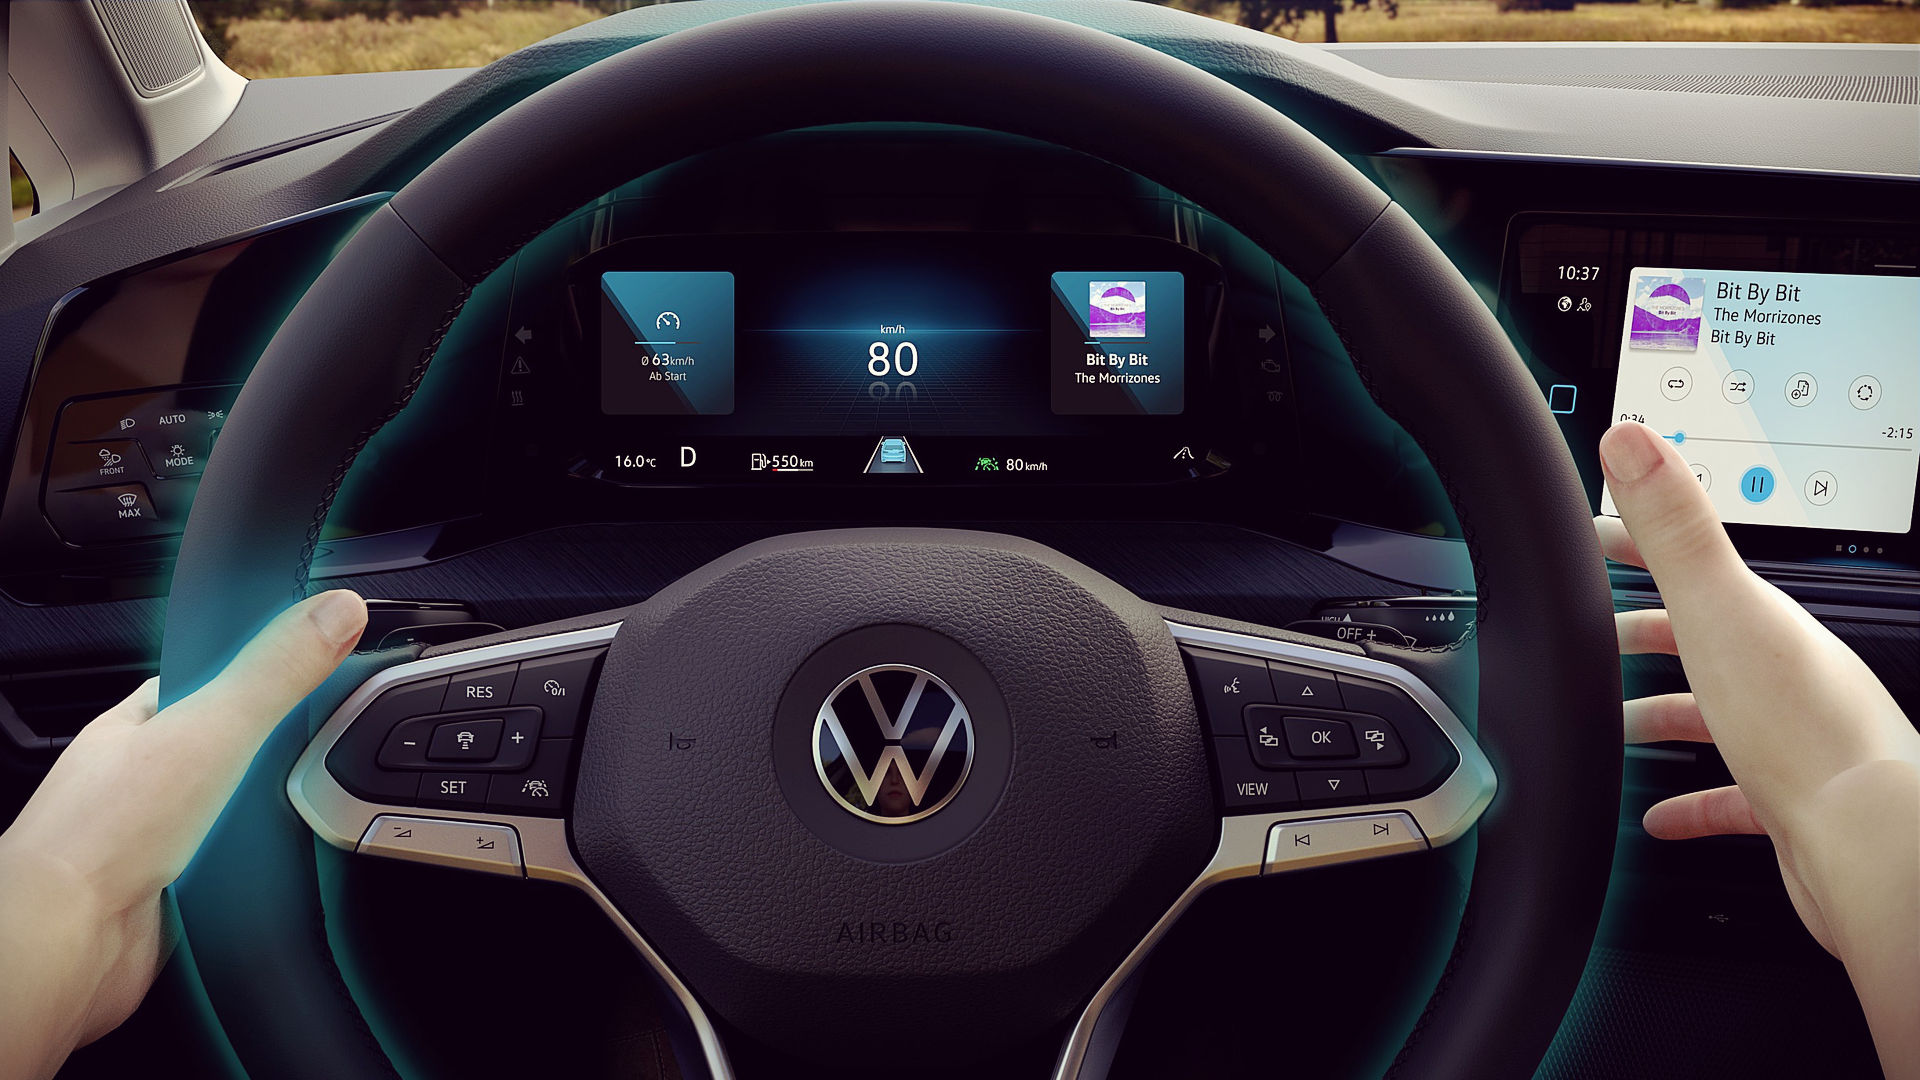 Volkswagen Golf 2020 Steering Wheel Interior